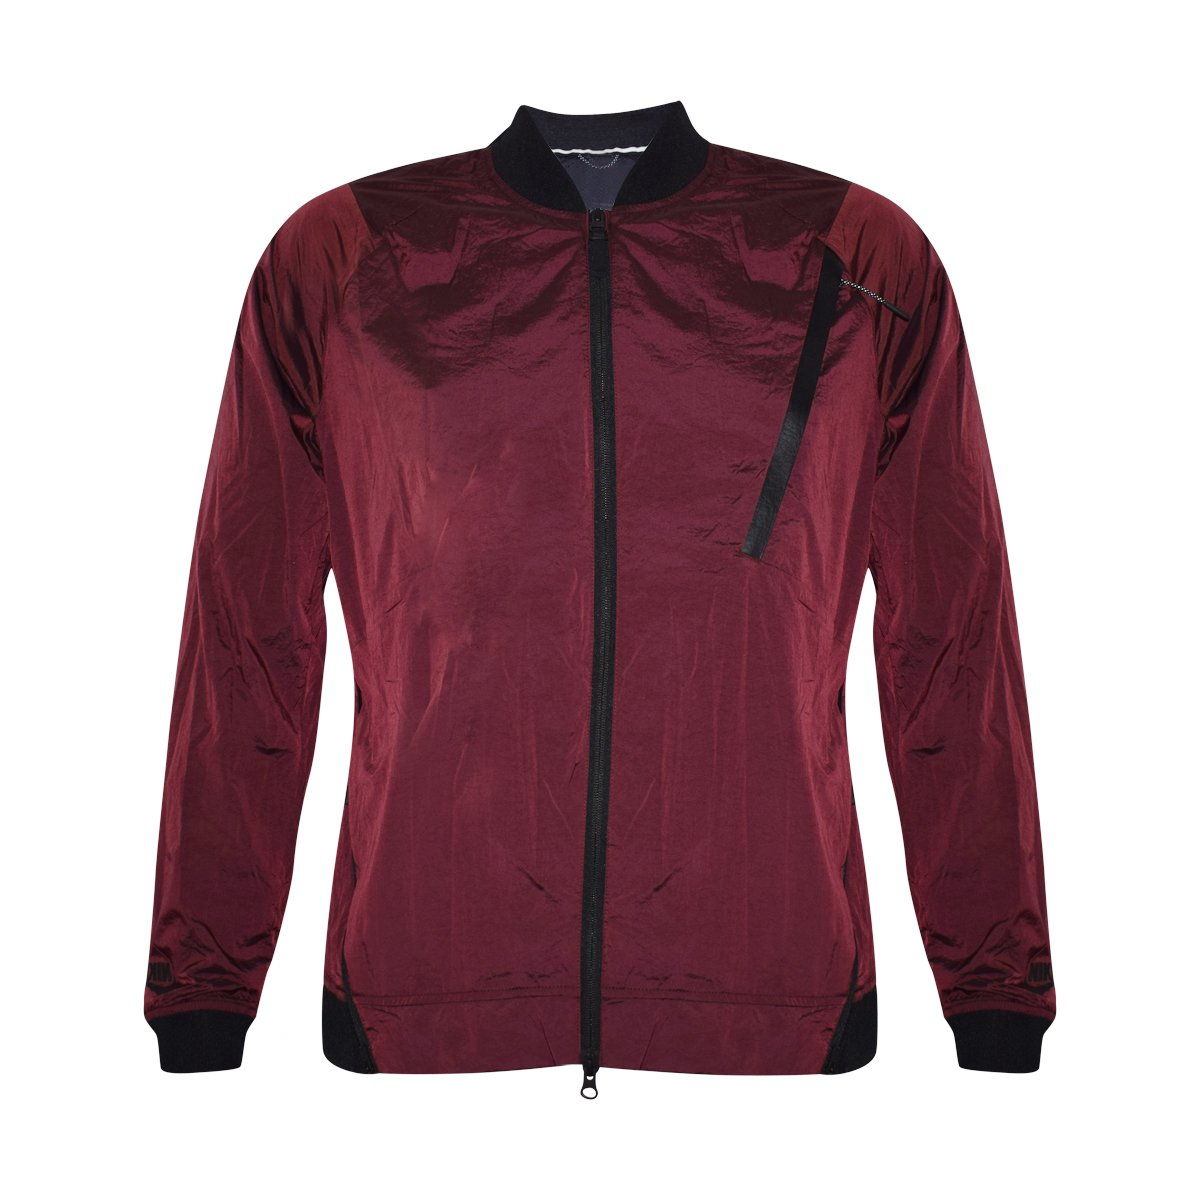 NIKE Tech Hypermesh Windrunner Varsity Jacket 832191-677 (Red/Black, Large) by NIKE